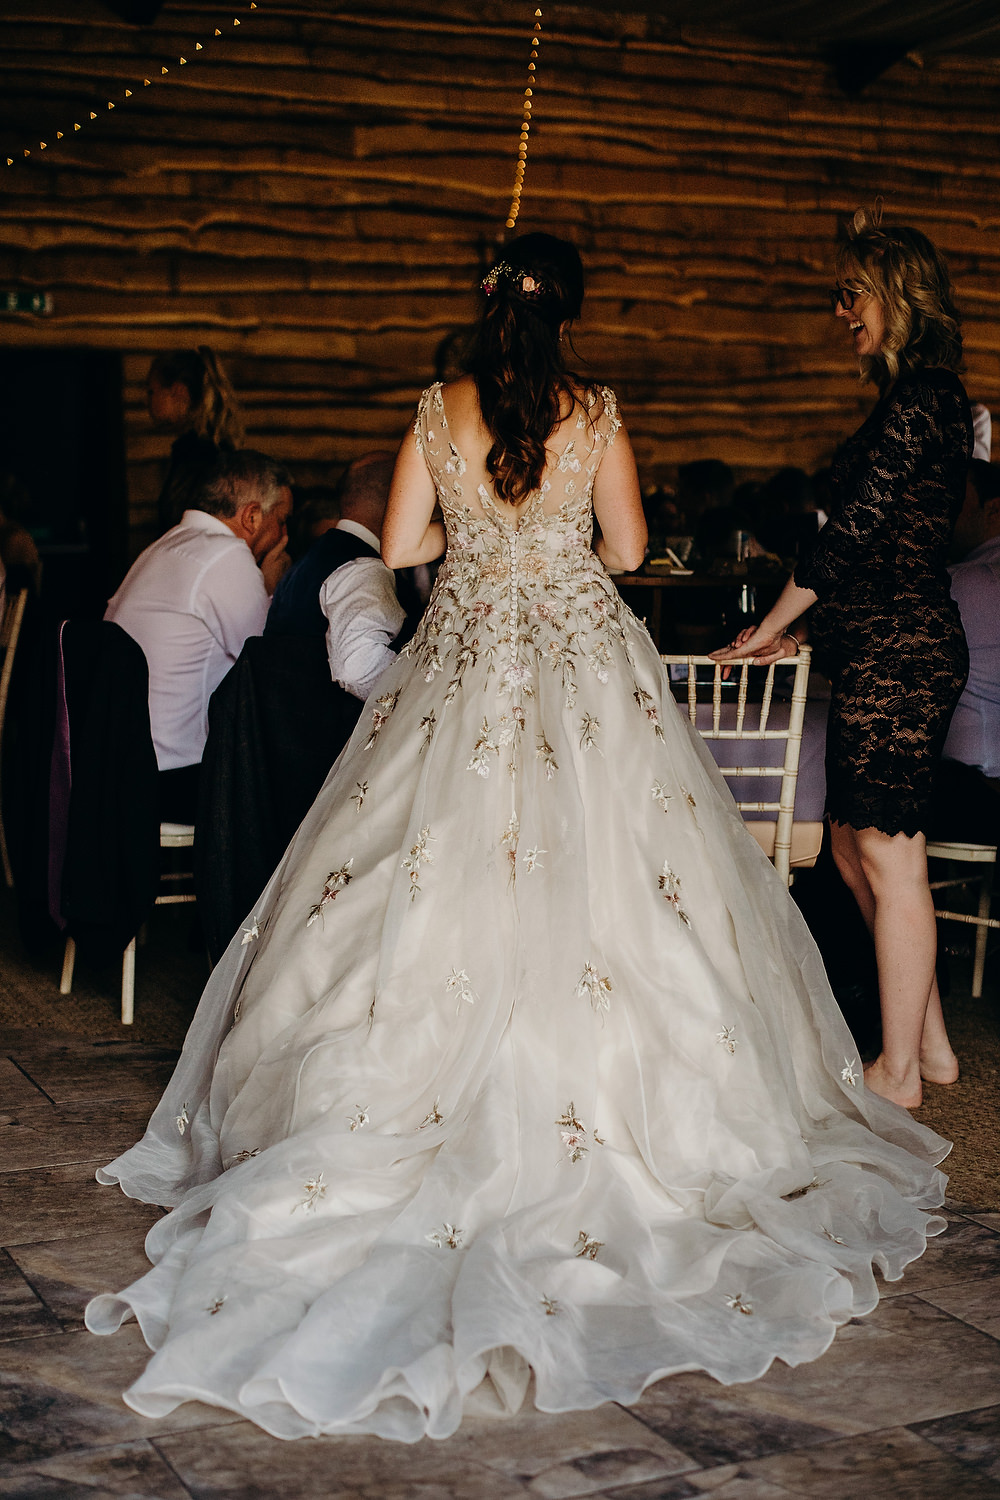 Bride Bridal Dress Gown Ian Stuart Summertime Embroidery Train Hornington Manor Wedding Richard Skins Photography